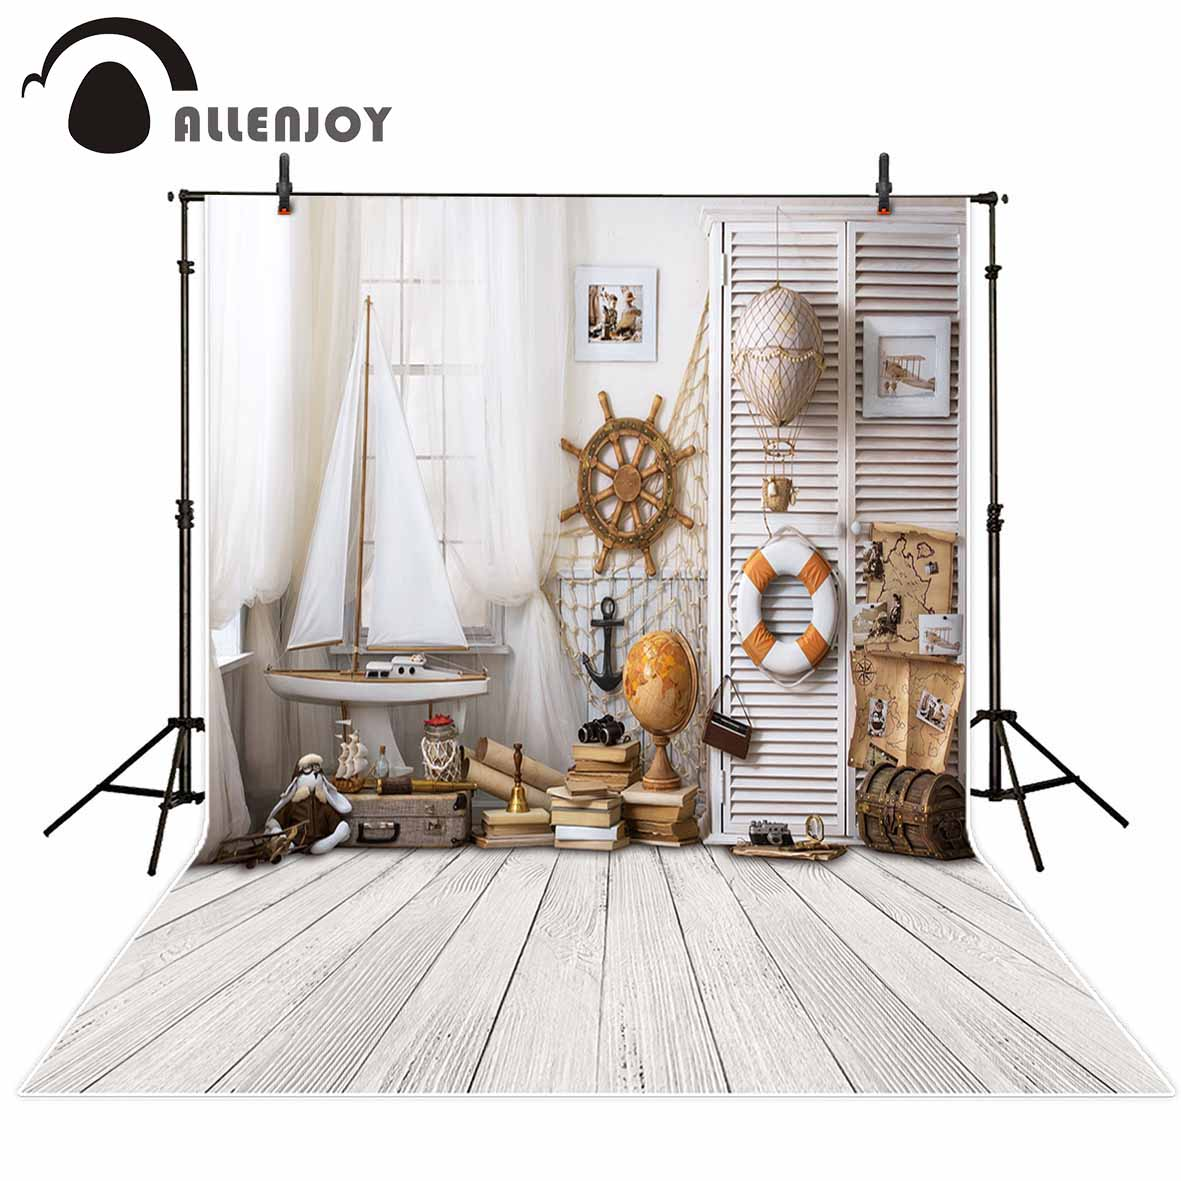 Allenjoy children sailor wood floor indoor photography backdrops curtain boat white planks board backgrounds for photo studio allenjoy photography backdrops love white wood board floor red hearts branches valentine s day wedding photo booth profissional